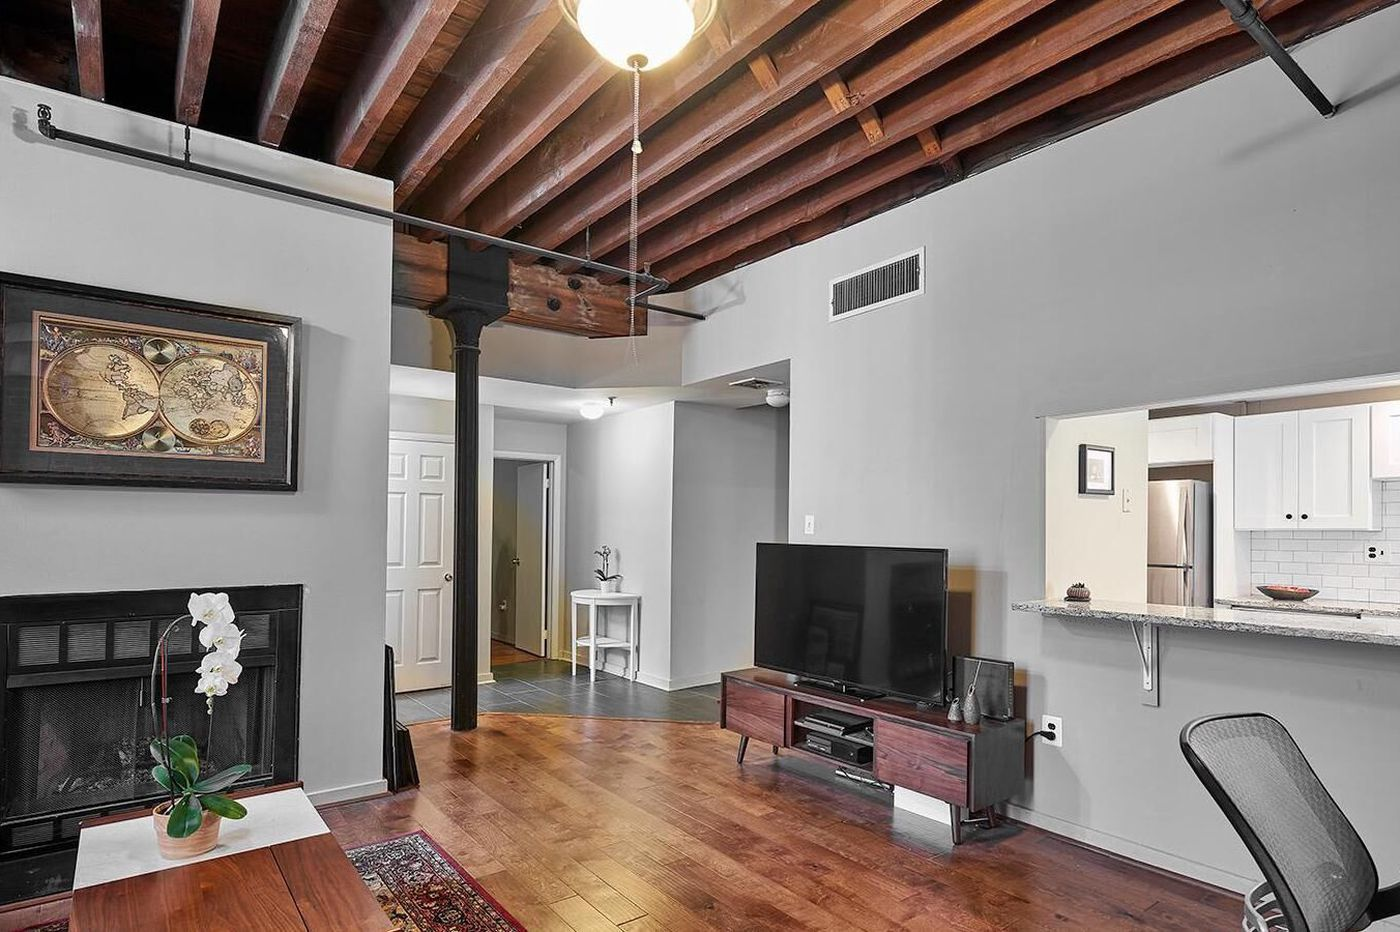 On the market: A 737-square-foot condo in Old City for $275,000